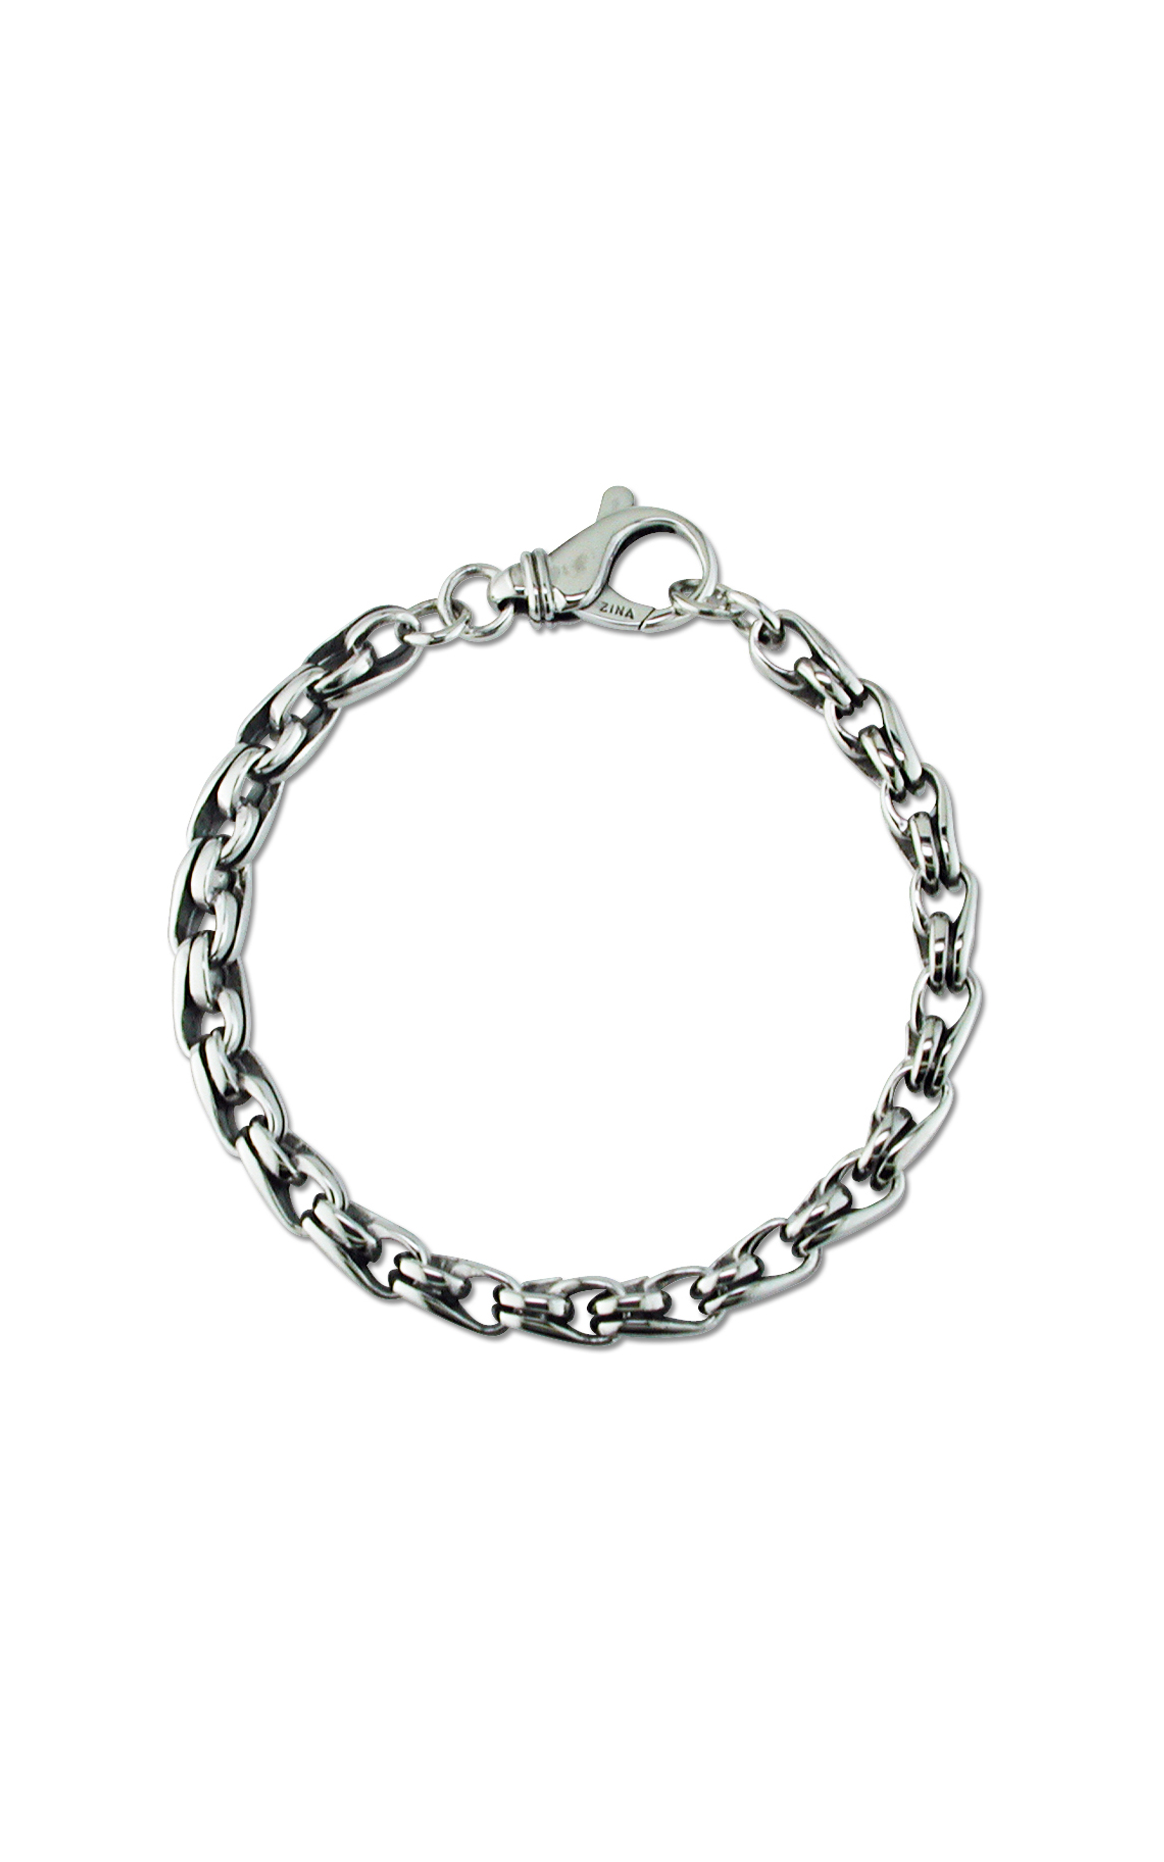 Zina Men's Bracelet A653-8.5 product image